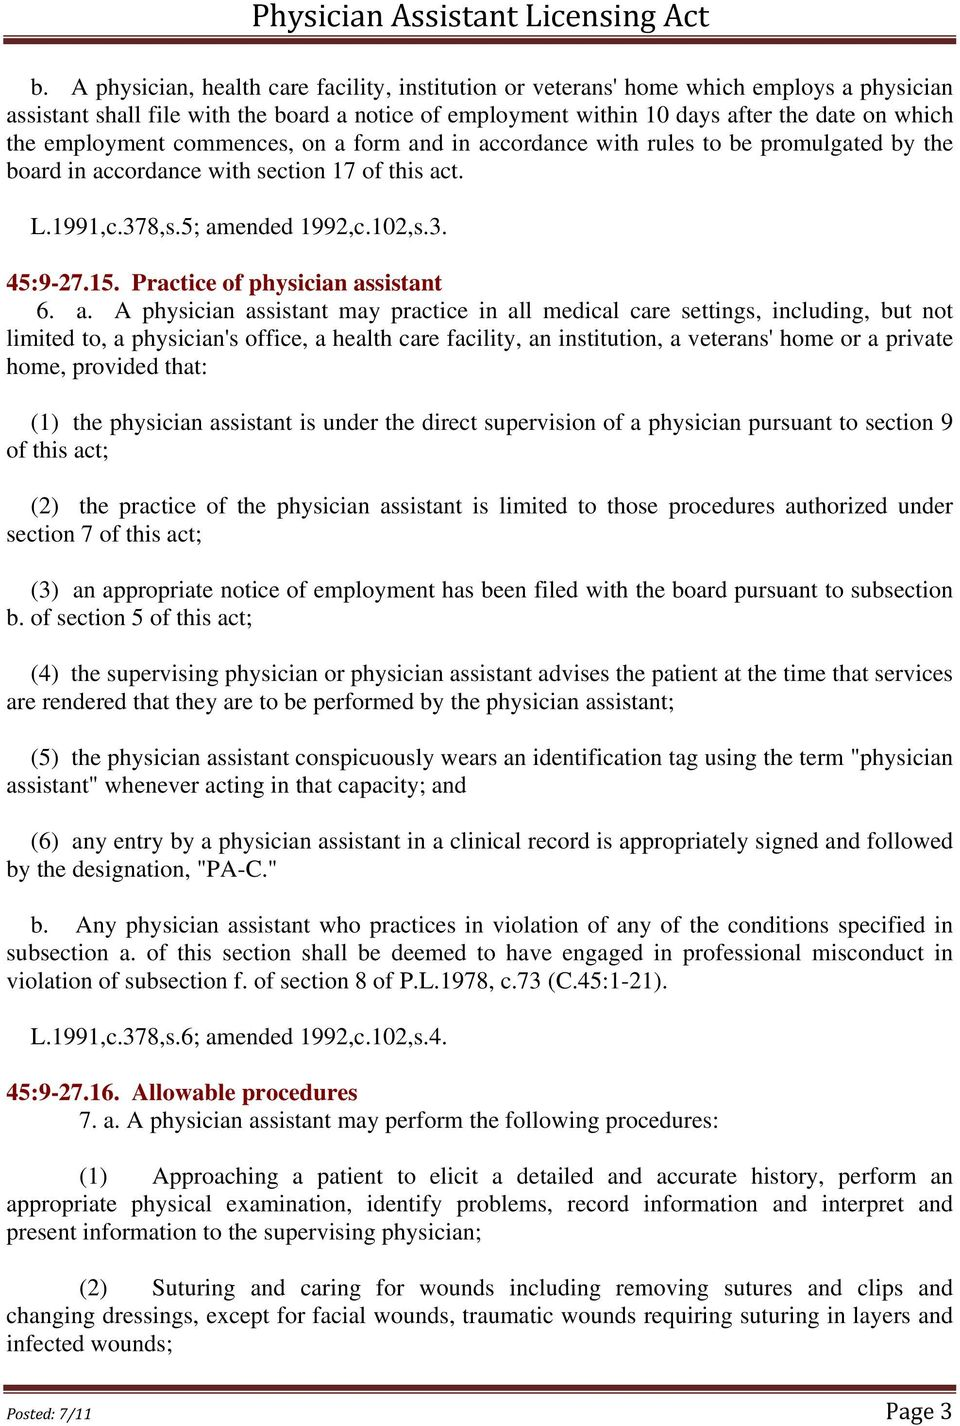 Practice of physician as